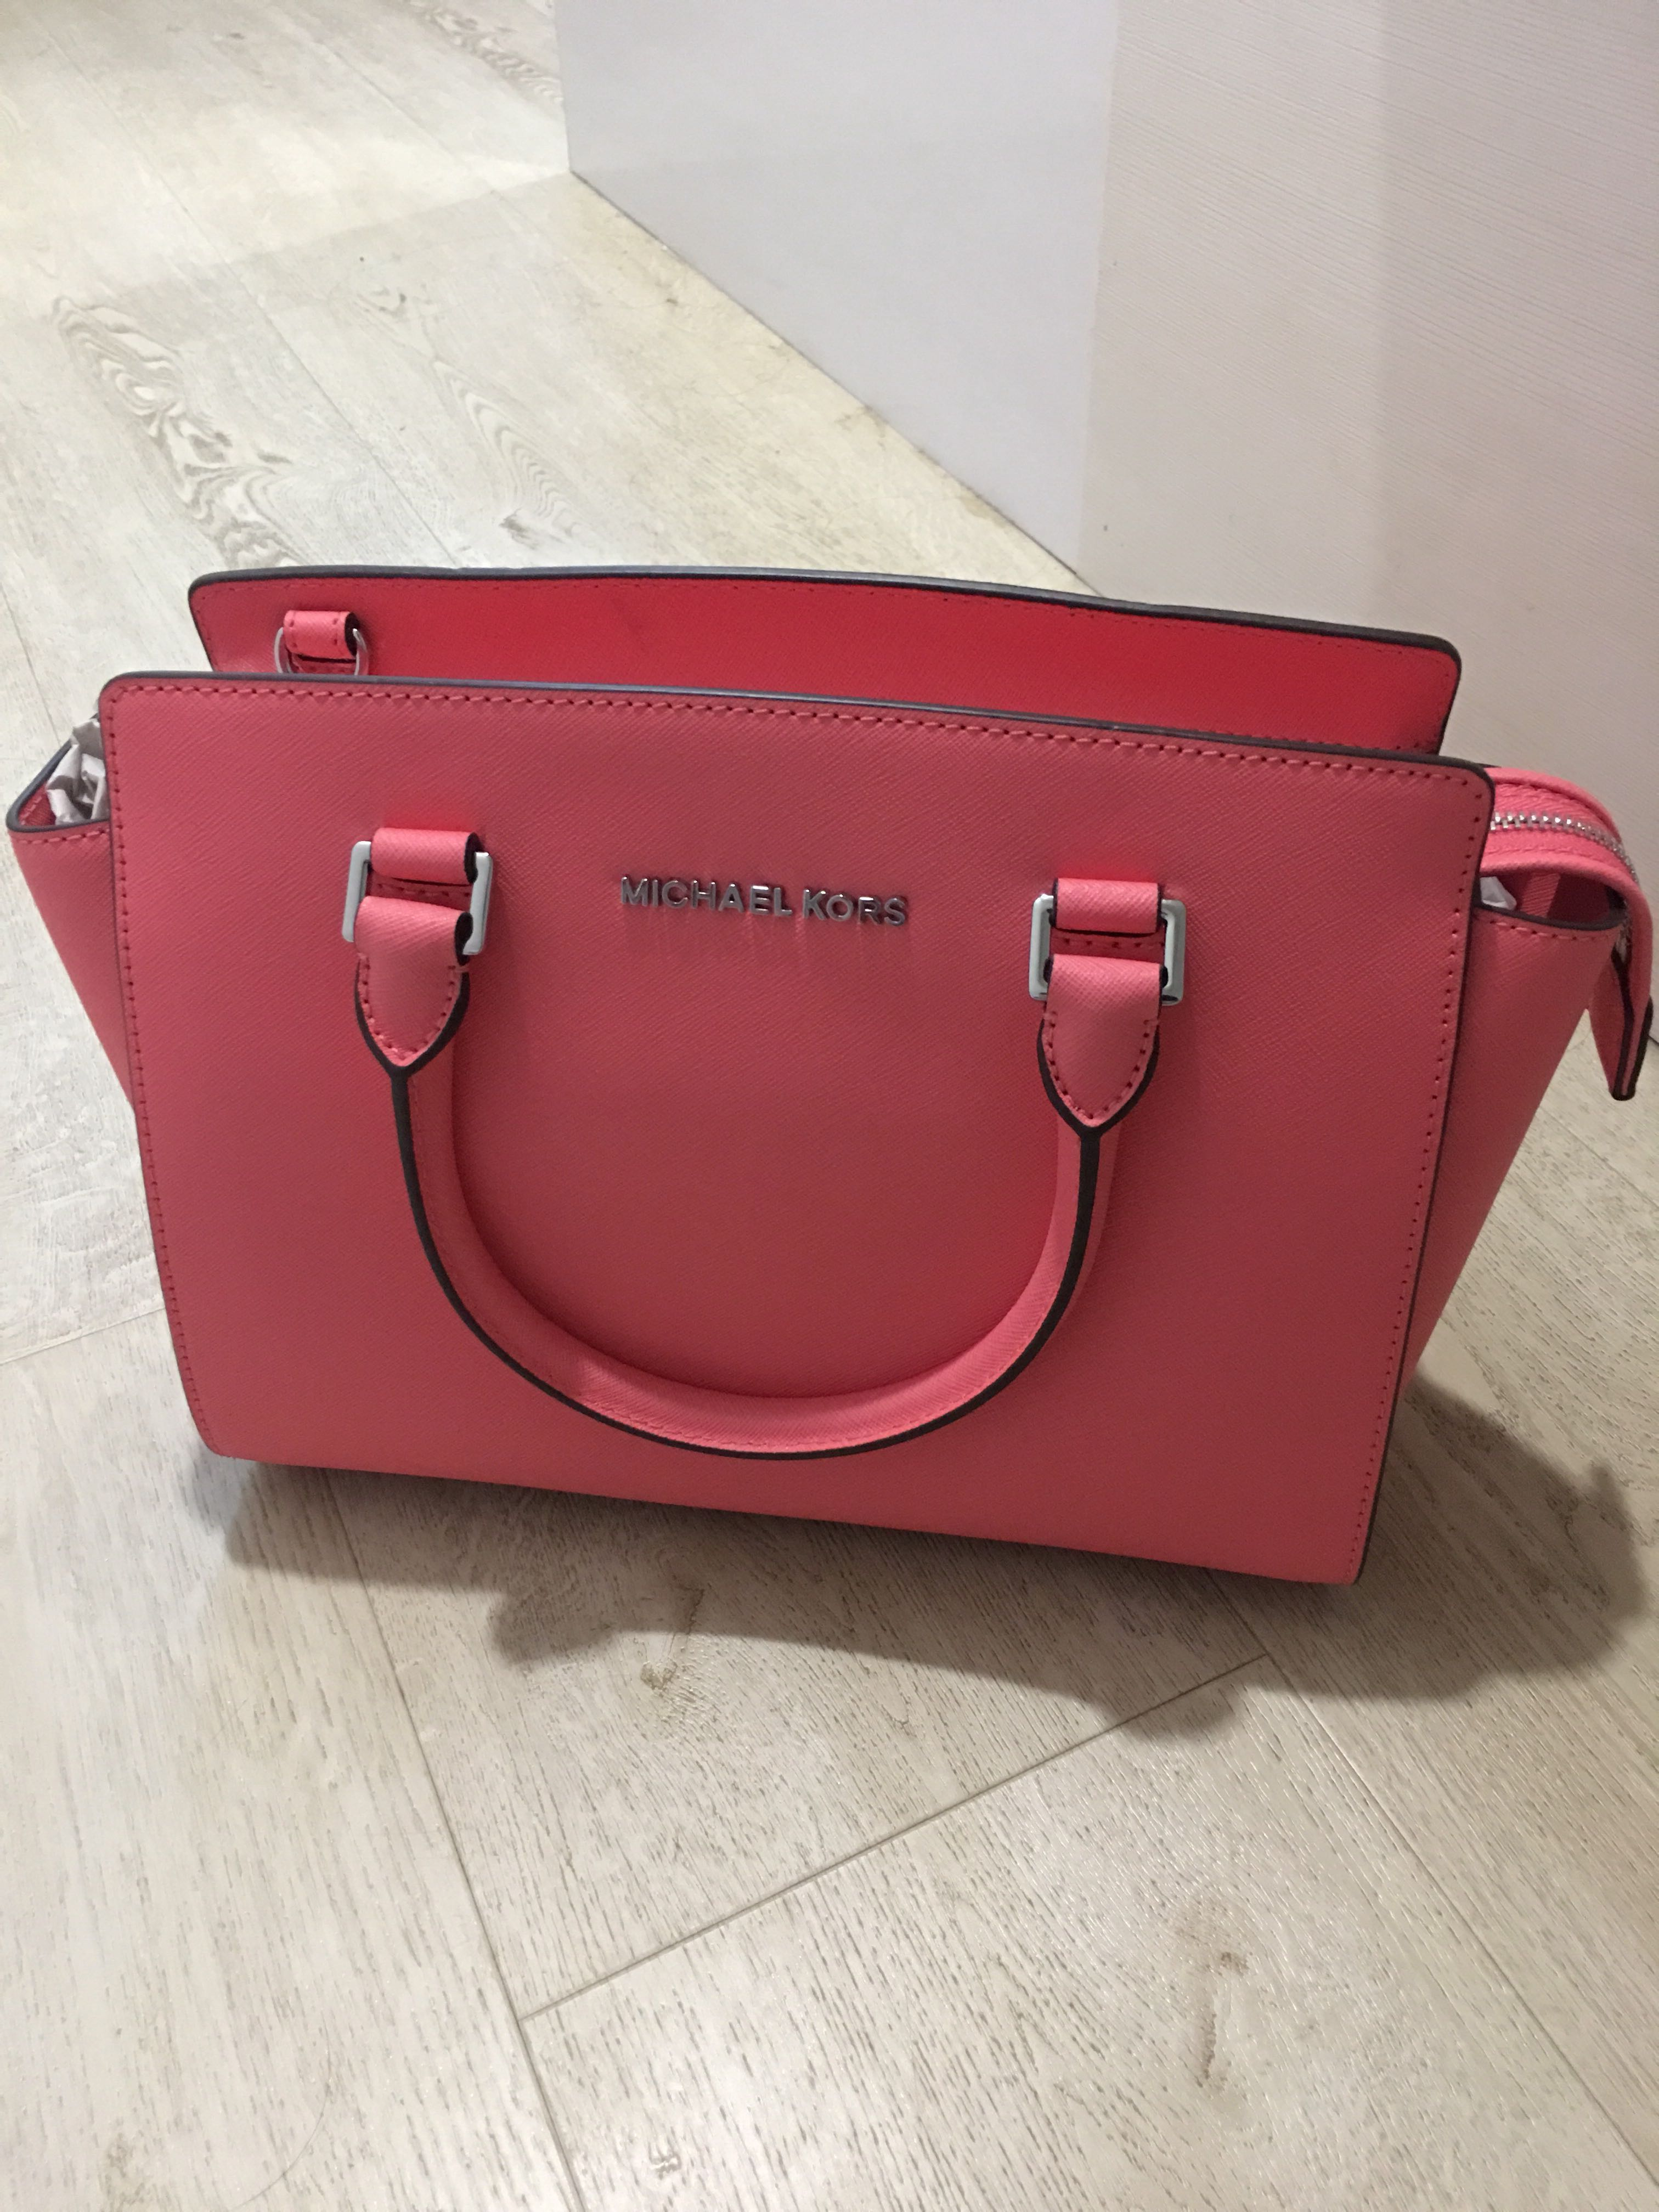 981dbe50716a ... greece price reduced michael kors selma coral luxury bags wallets on  b18cf f7d40